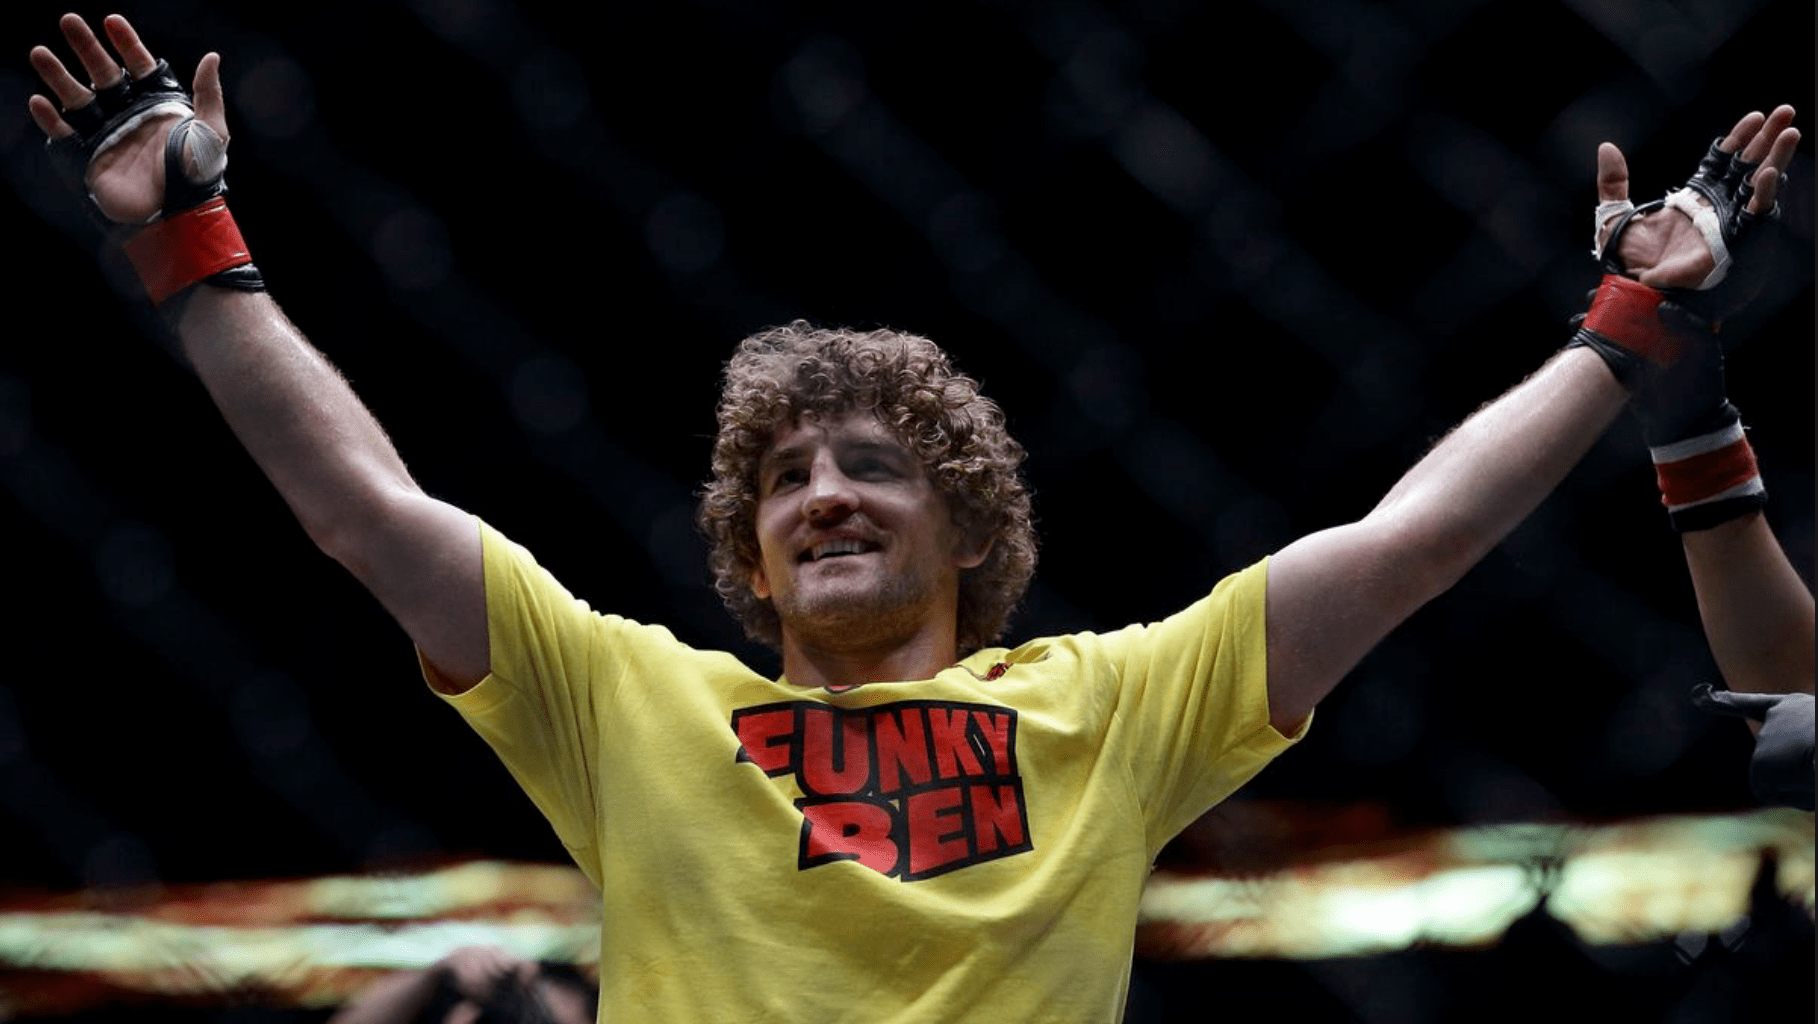 UFC: Ben Askren Hits Out At Colby Covington And Kamaru Usman